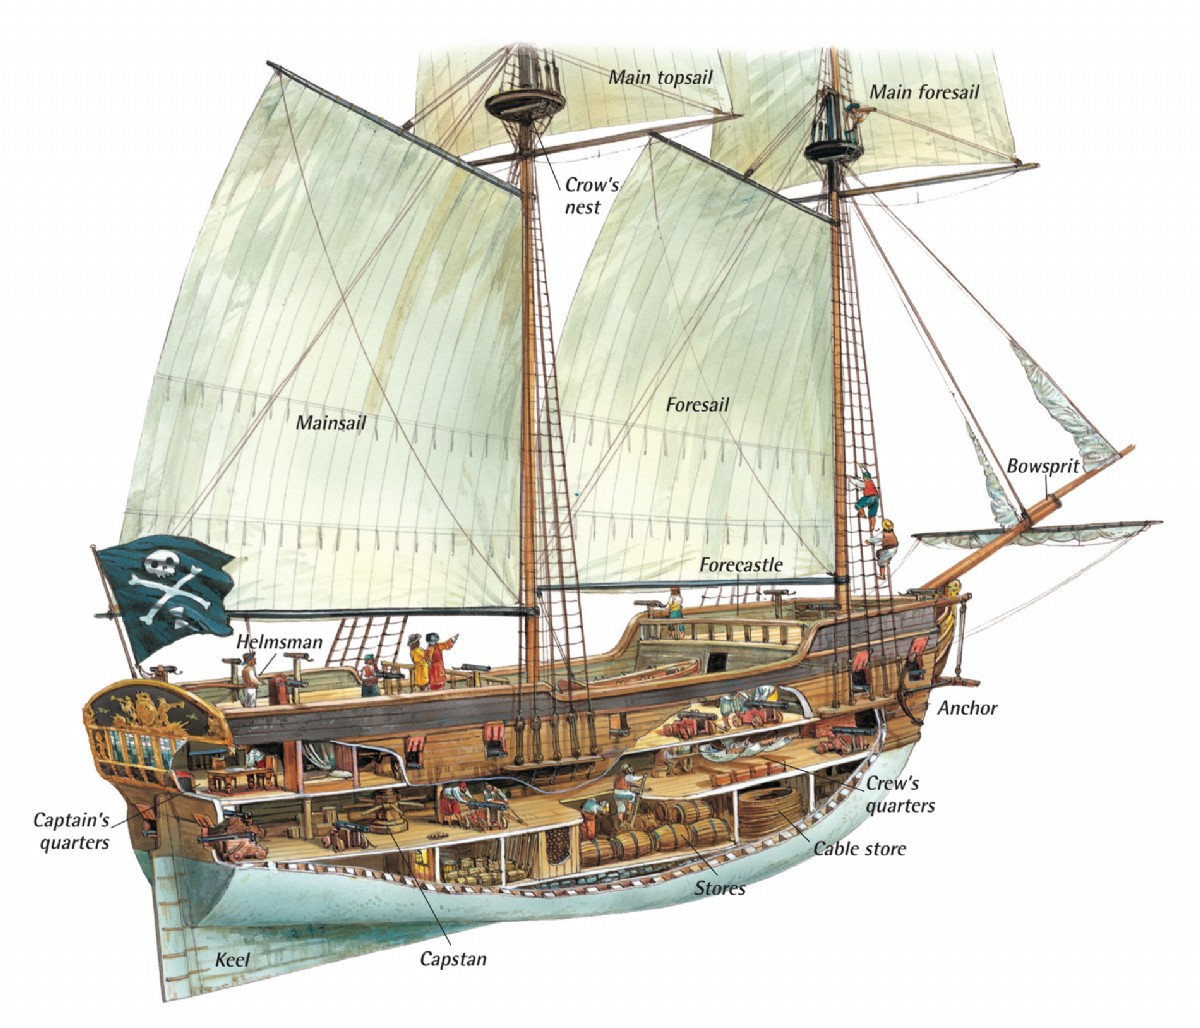 uss constitution rigging diagram hyundai i10 ecu wiring anatomy of the ship — a pirate's glossary terms